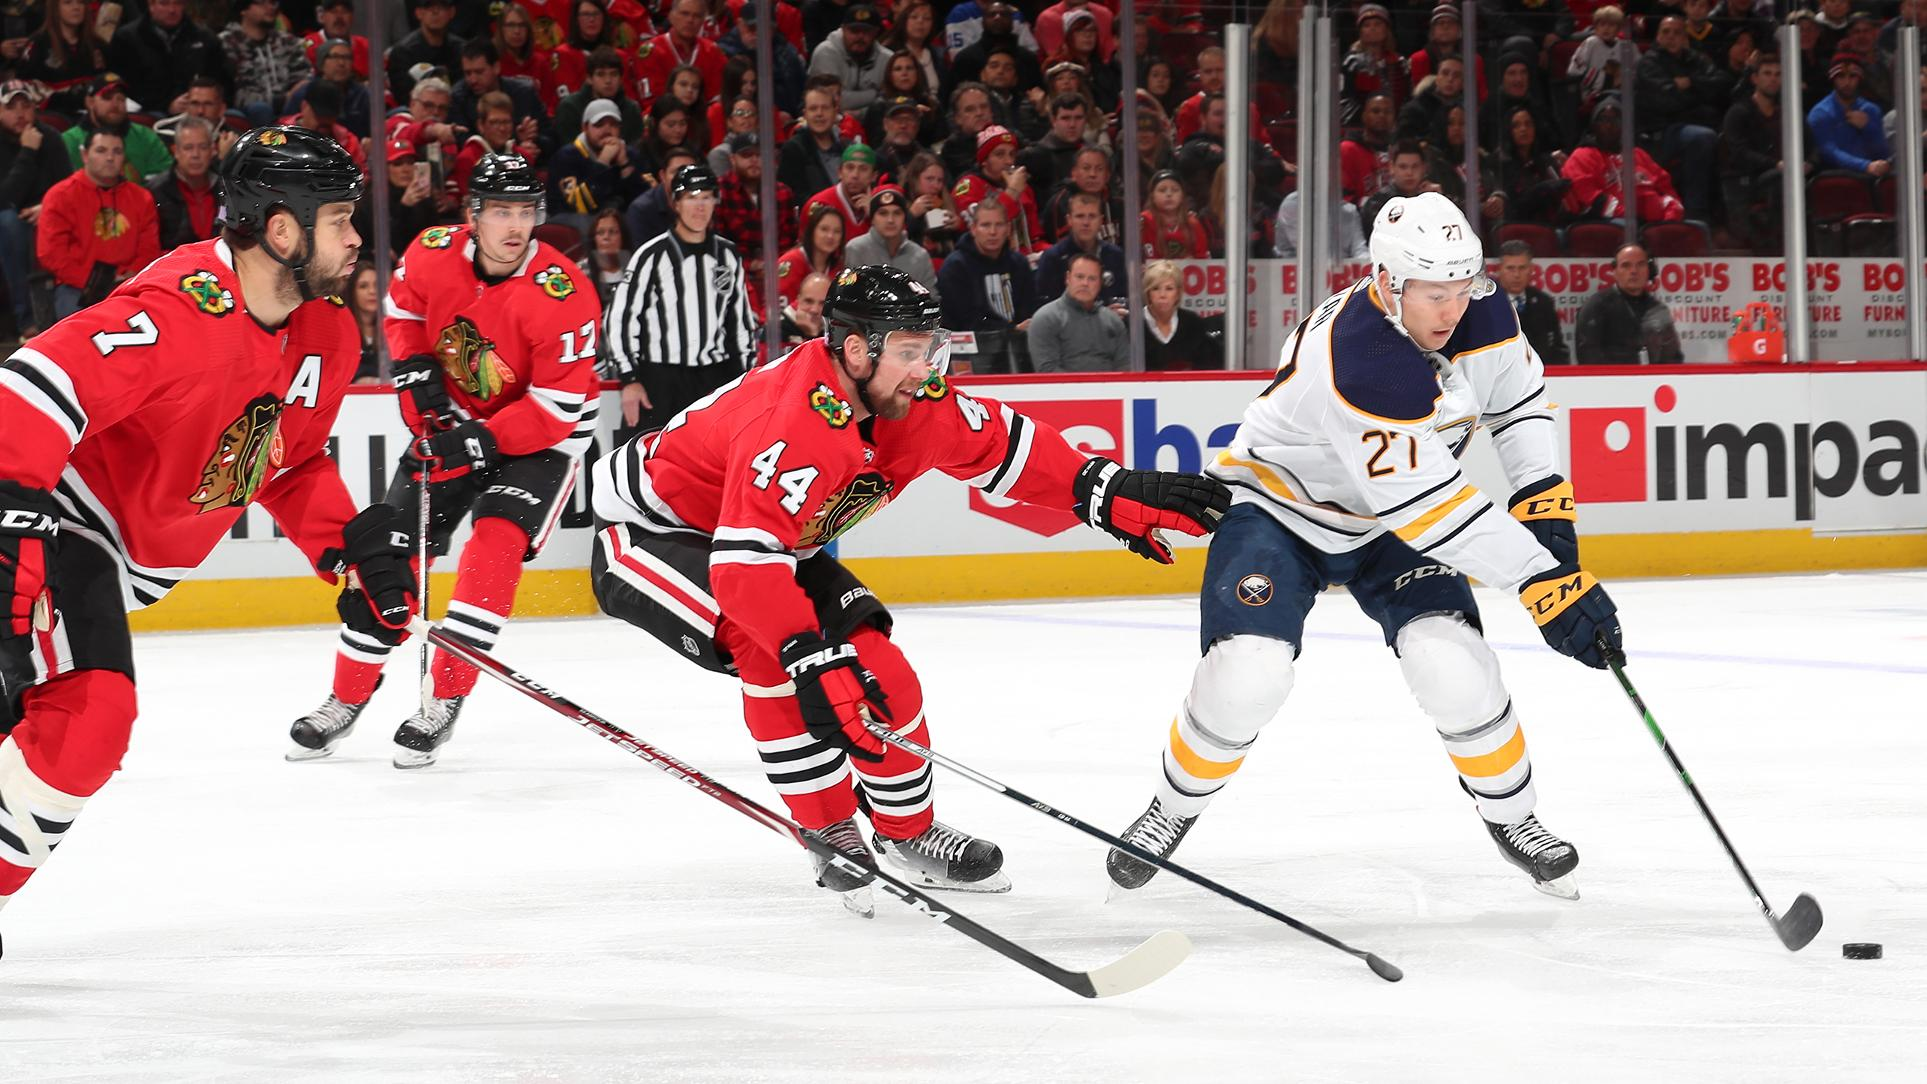 Sabres fall to Blackhawks, 4-1